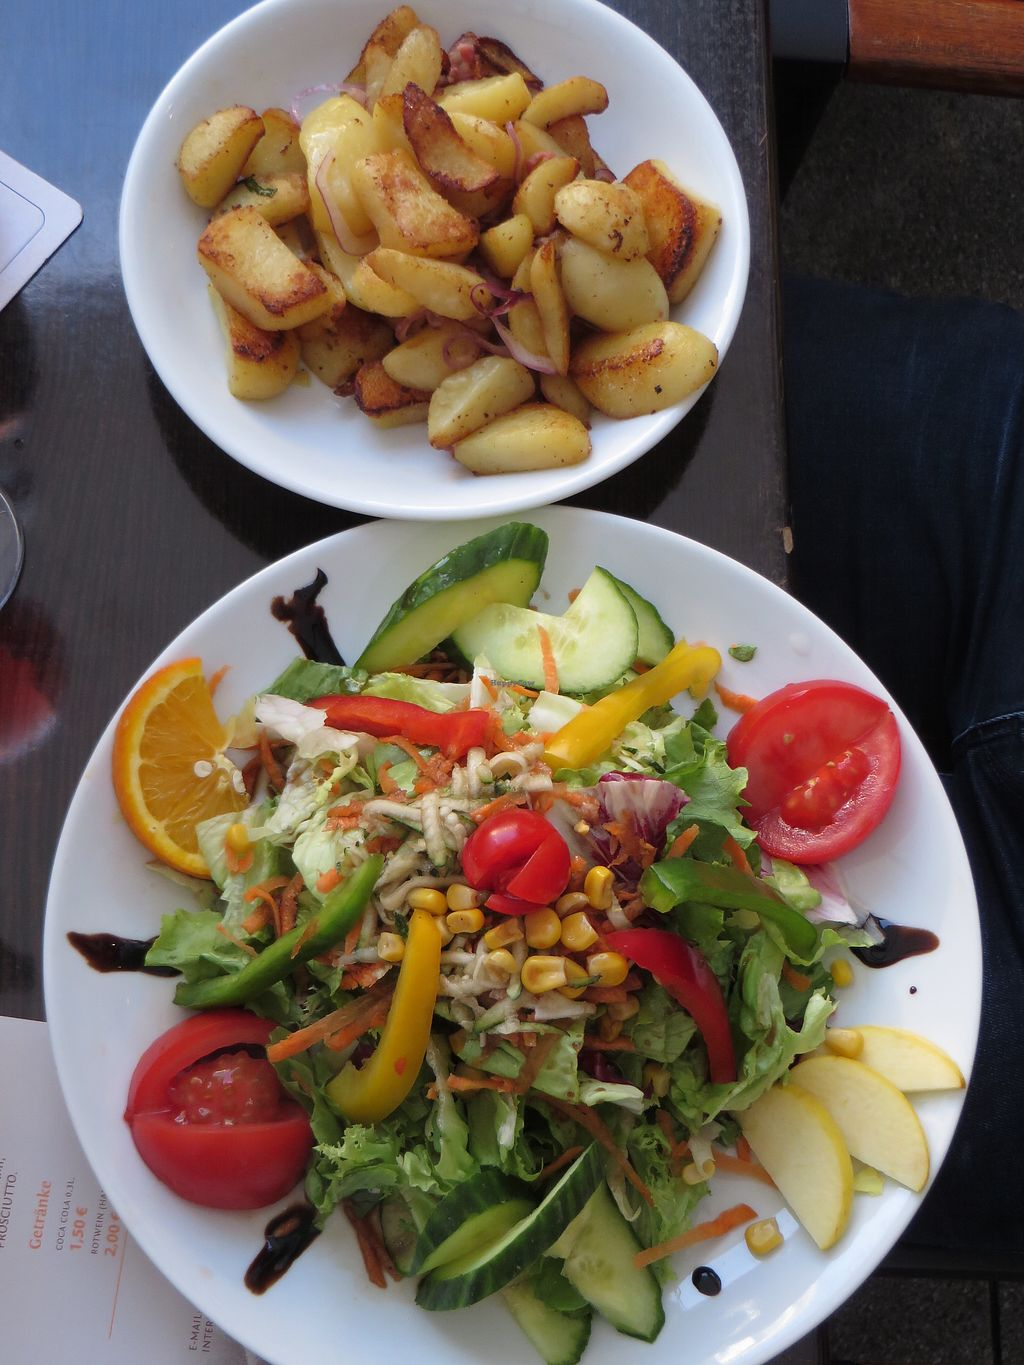 """Photo of Angelos Via Napoli  by <a href=""""/members/profile/VegiAnna"""">VegiAnna</a> <br/>A big Insalata mista with fried potatoes (not on the menu but can be ordered spontaneously) <br/> July 15, 2017  - <a href='/contact/abuse/image/49373/280667'>Report</a>"""